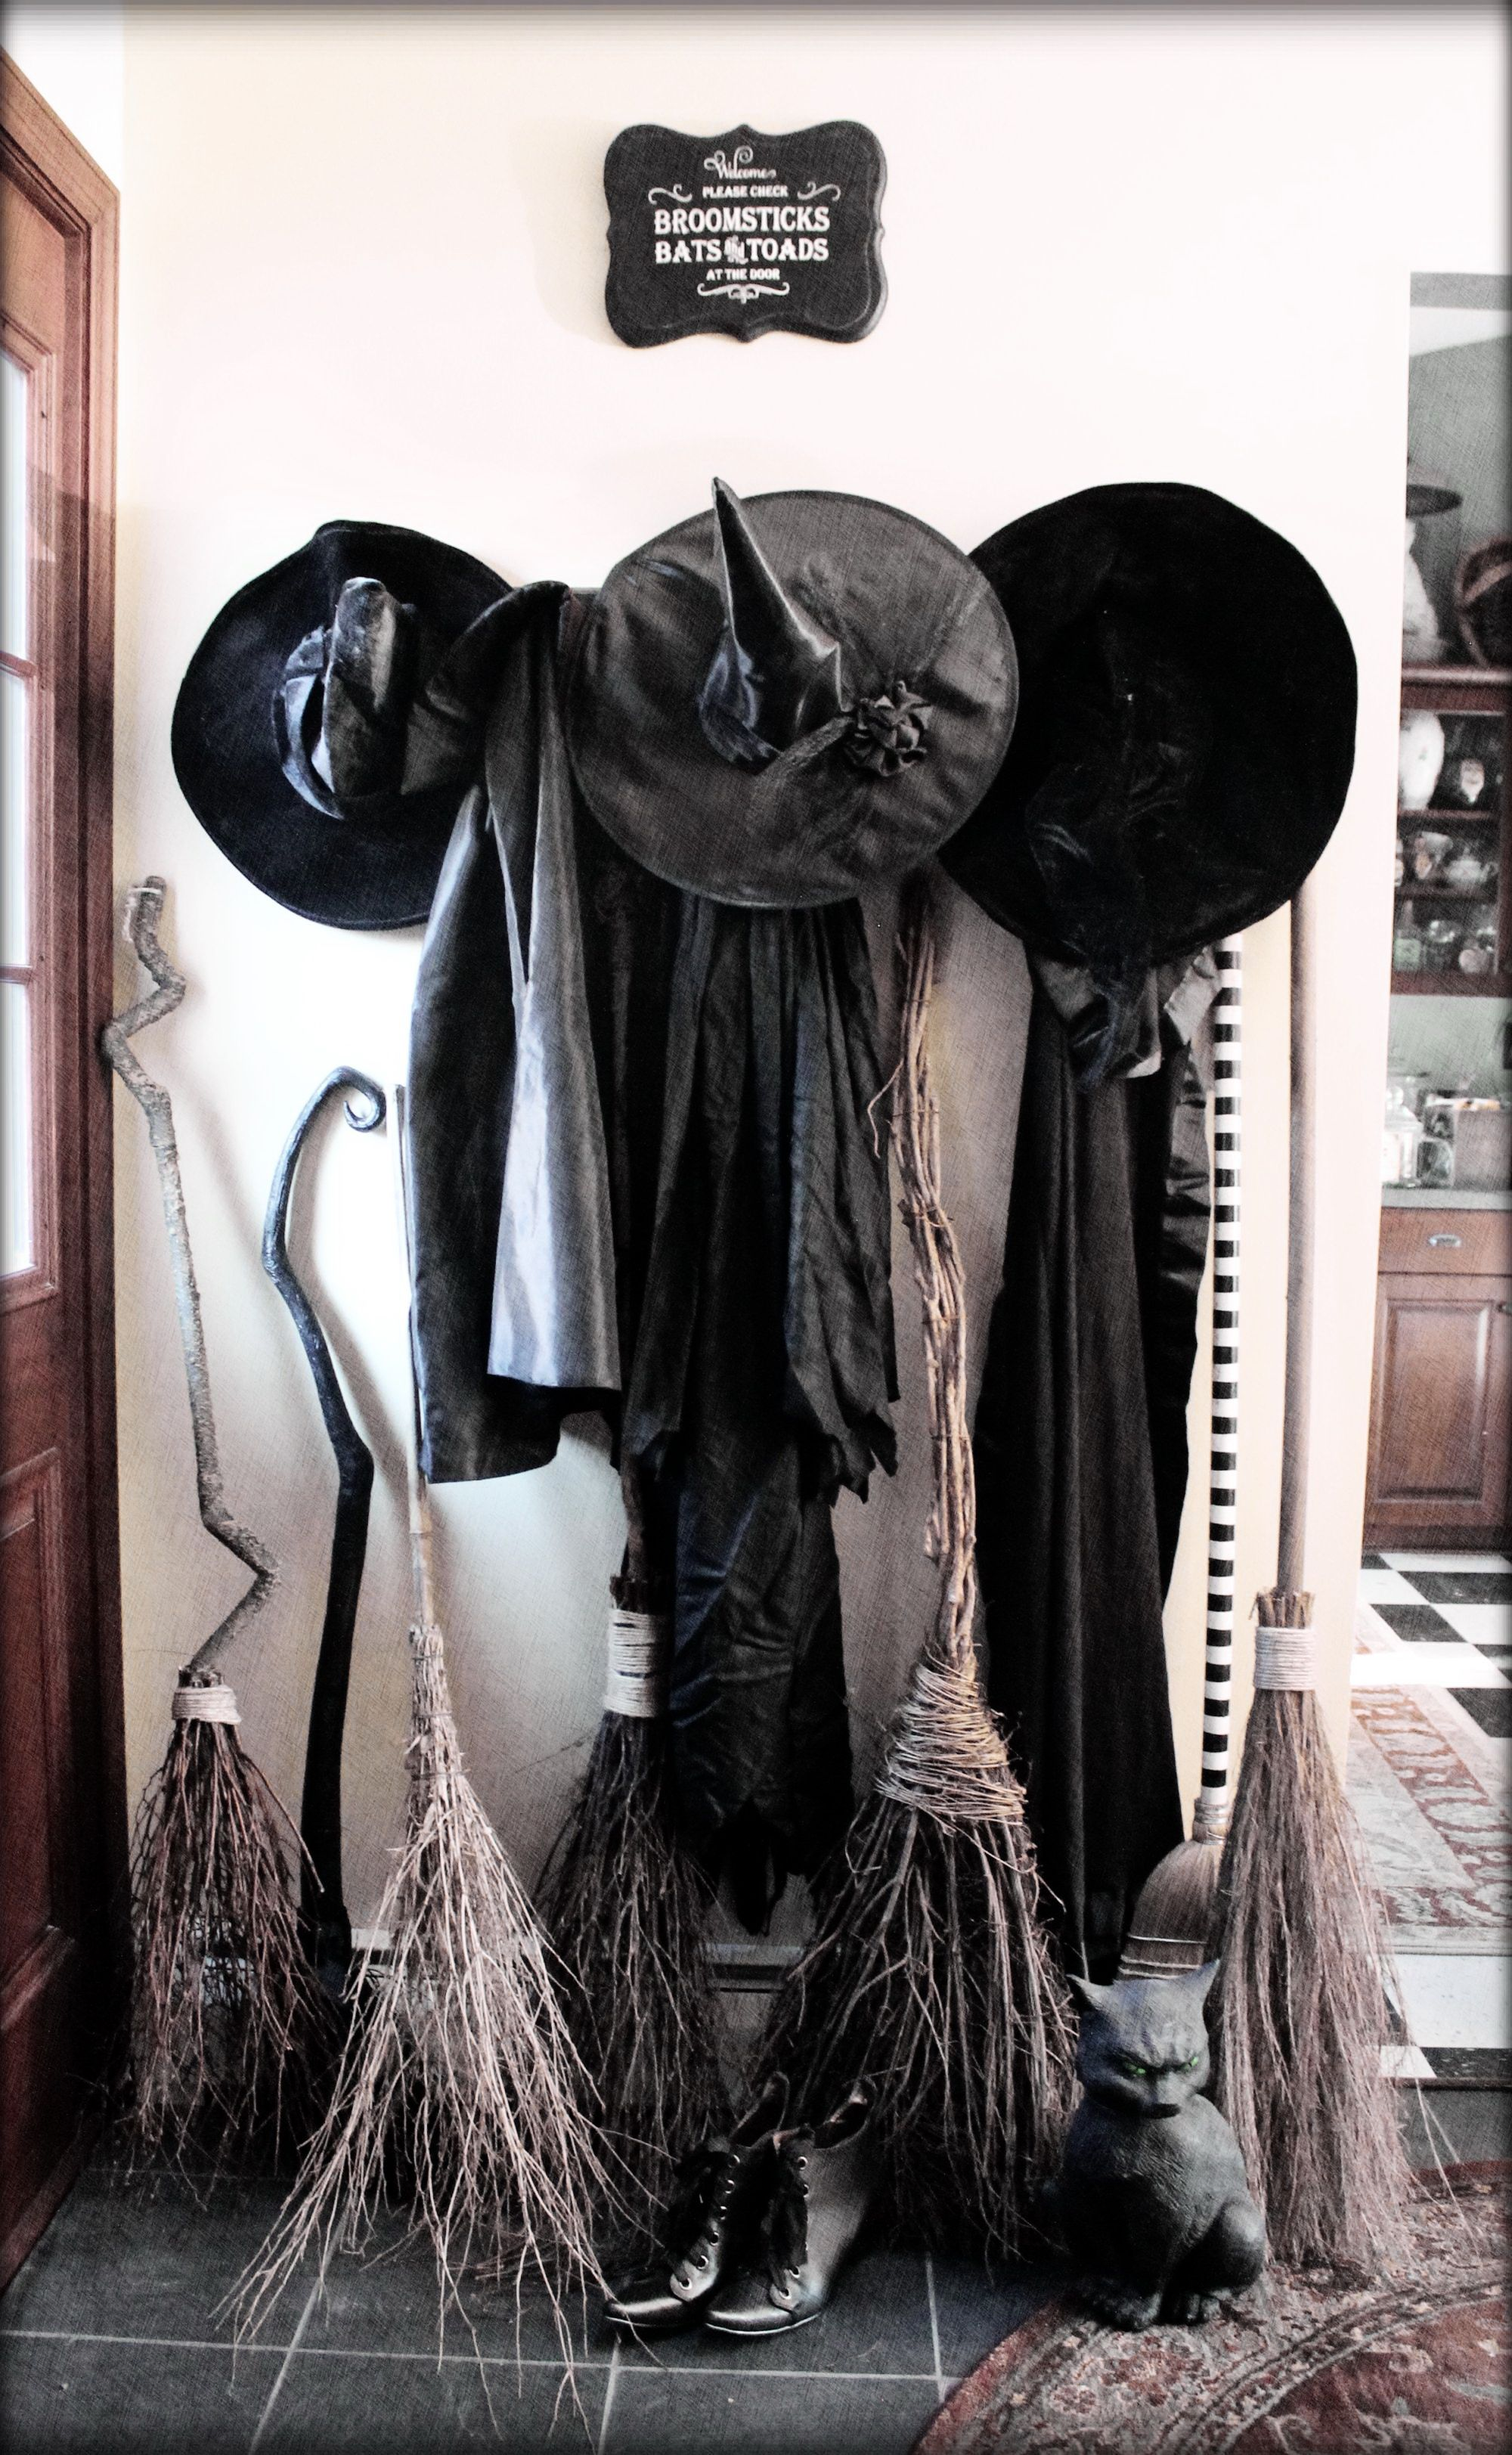 Pin by Julia Vin on WITCH HOME Pinterest Witches - Halloween Decorations For The Office